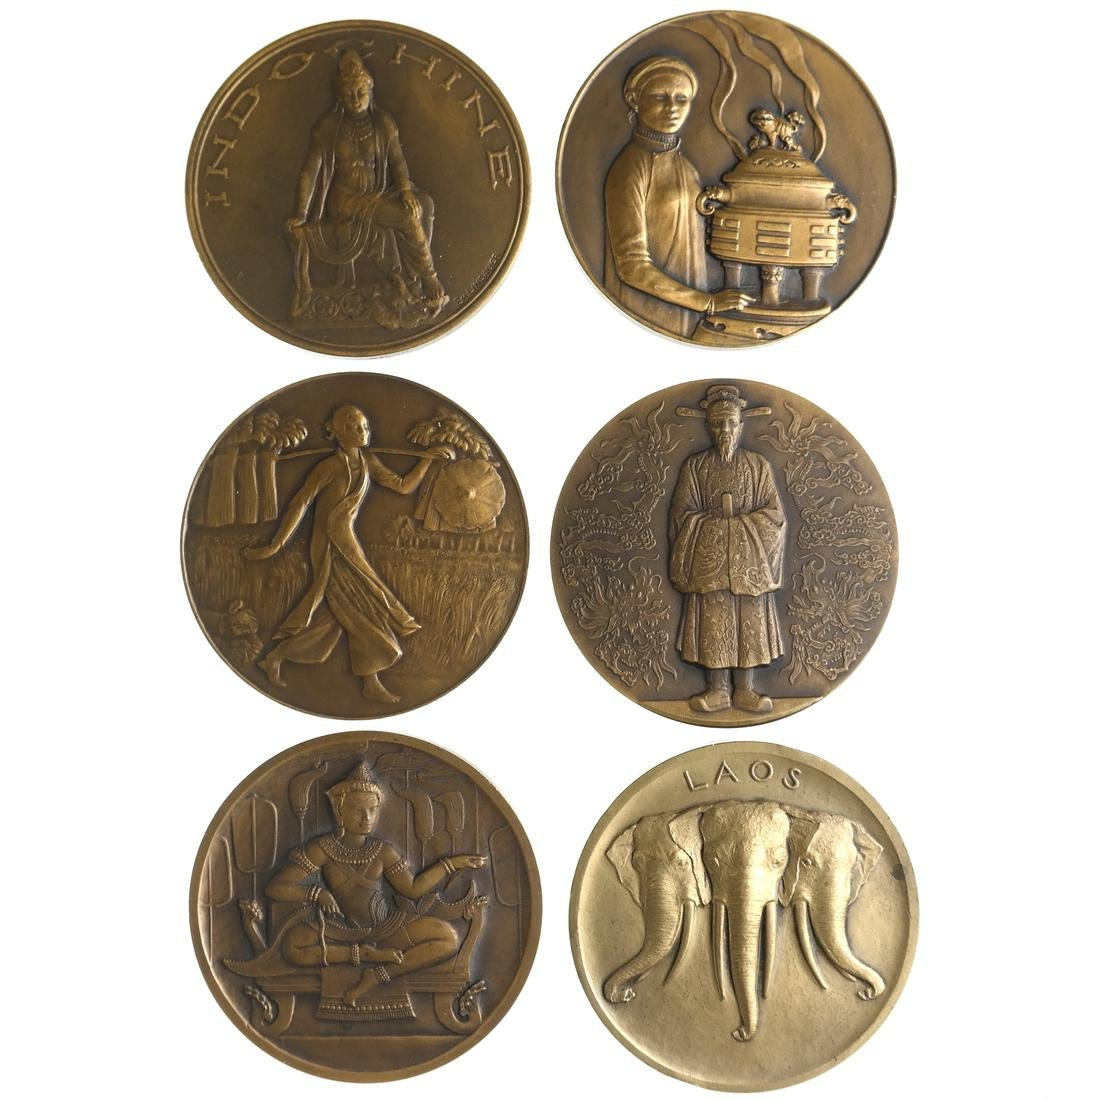 SET OF 6 INDO-CHINA REGION MEDALS, CA. 1930.